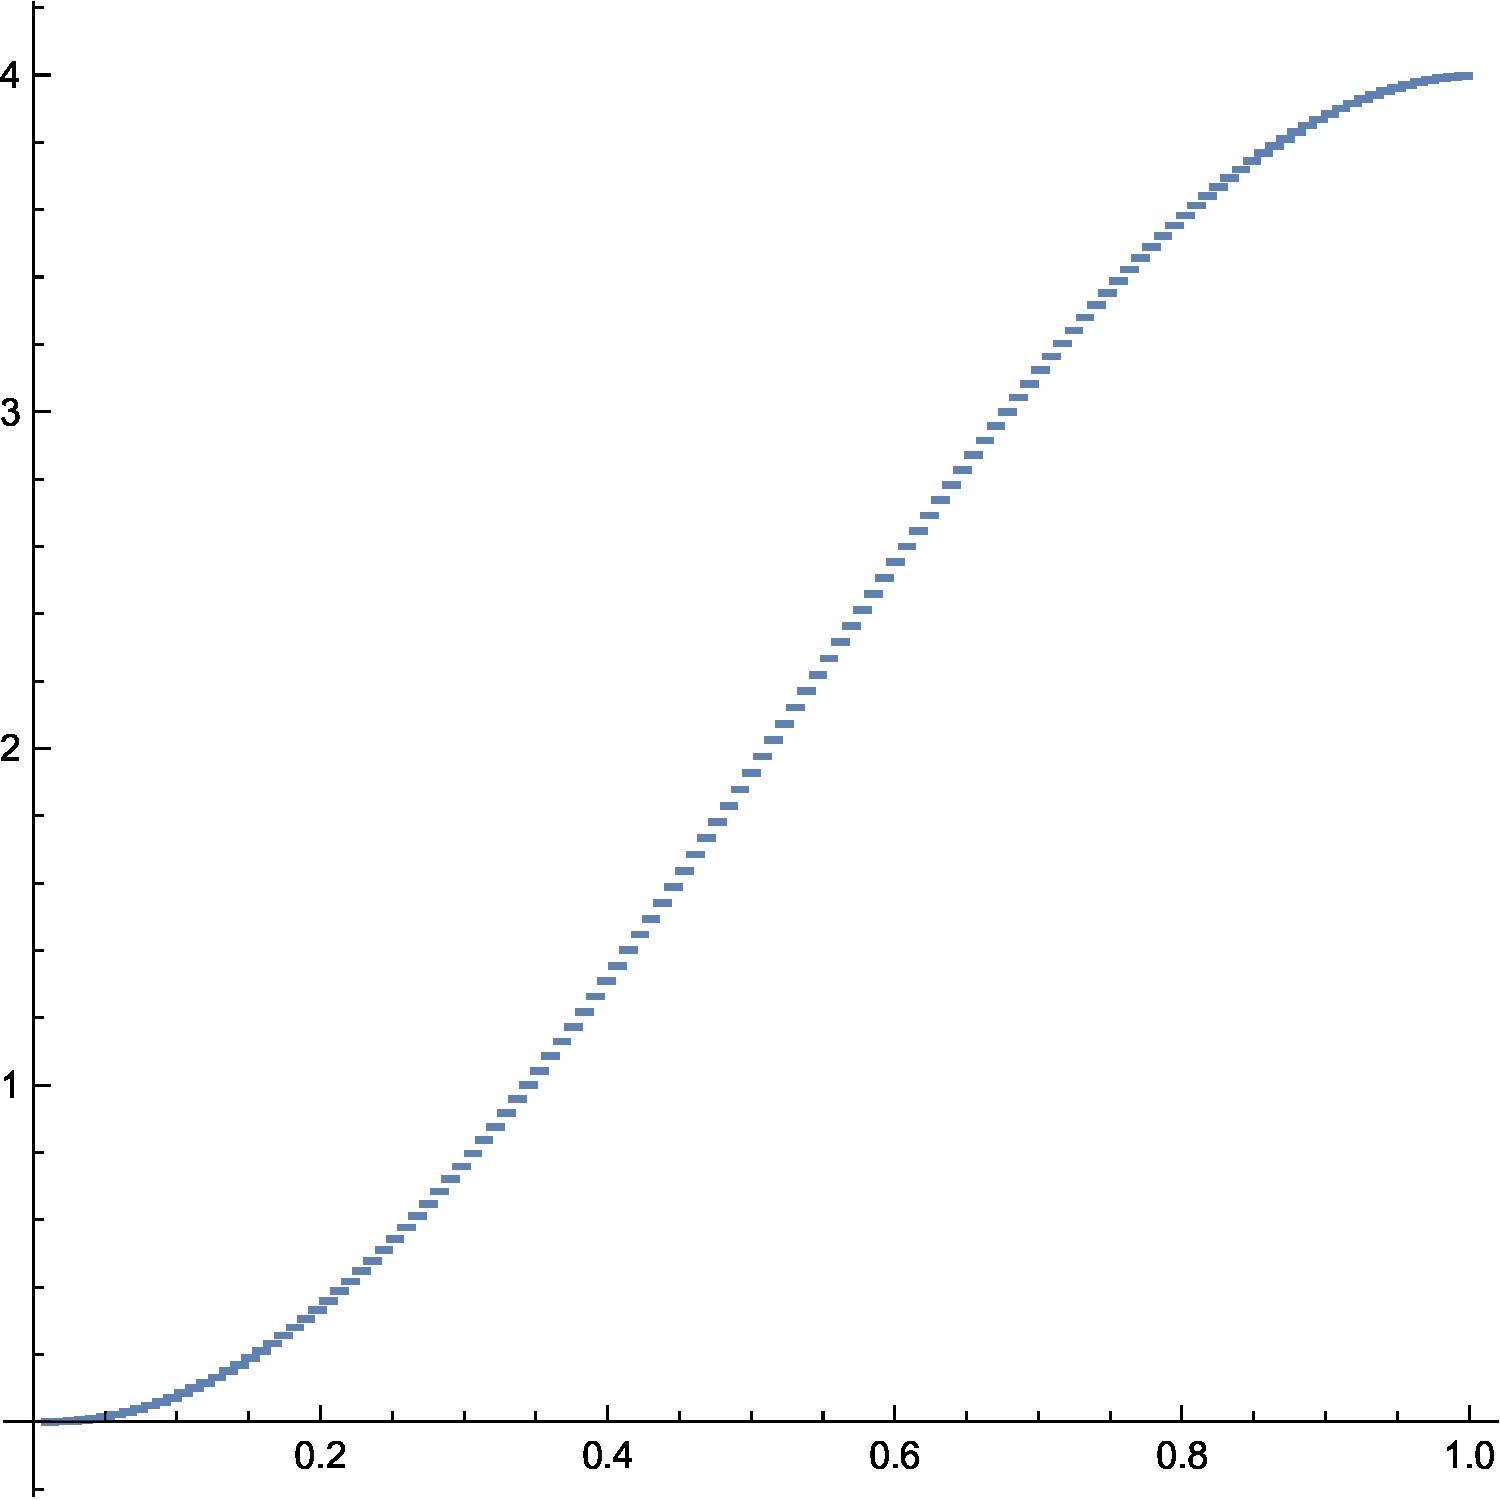 The limiting spectral function in the Kirchhoff case